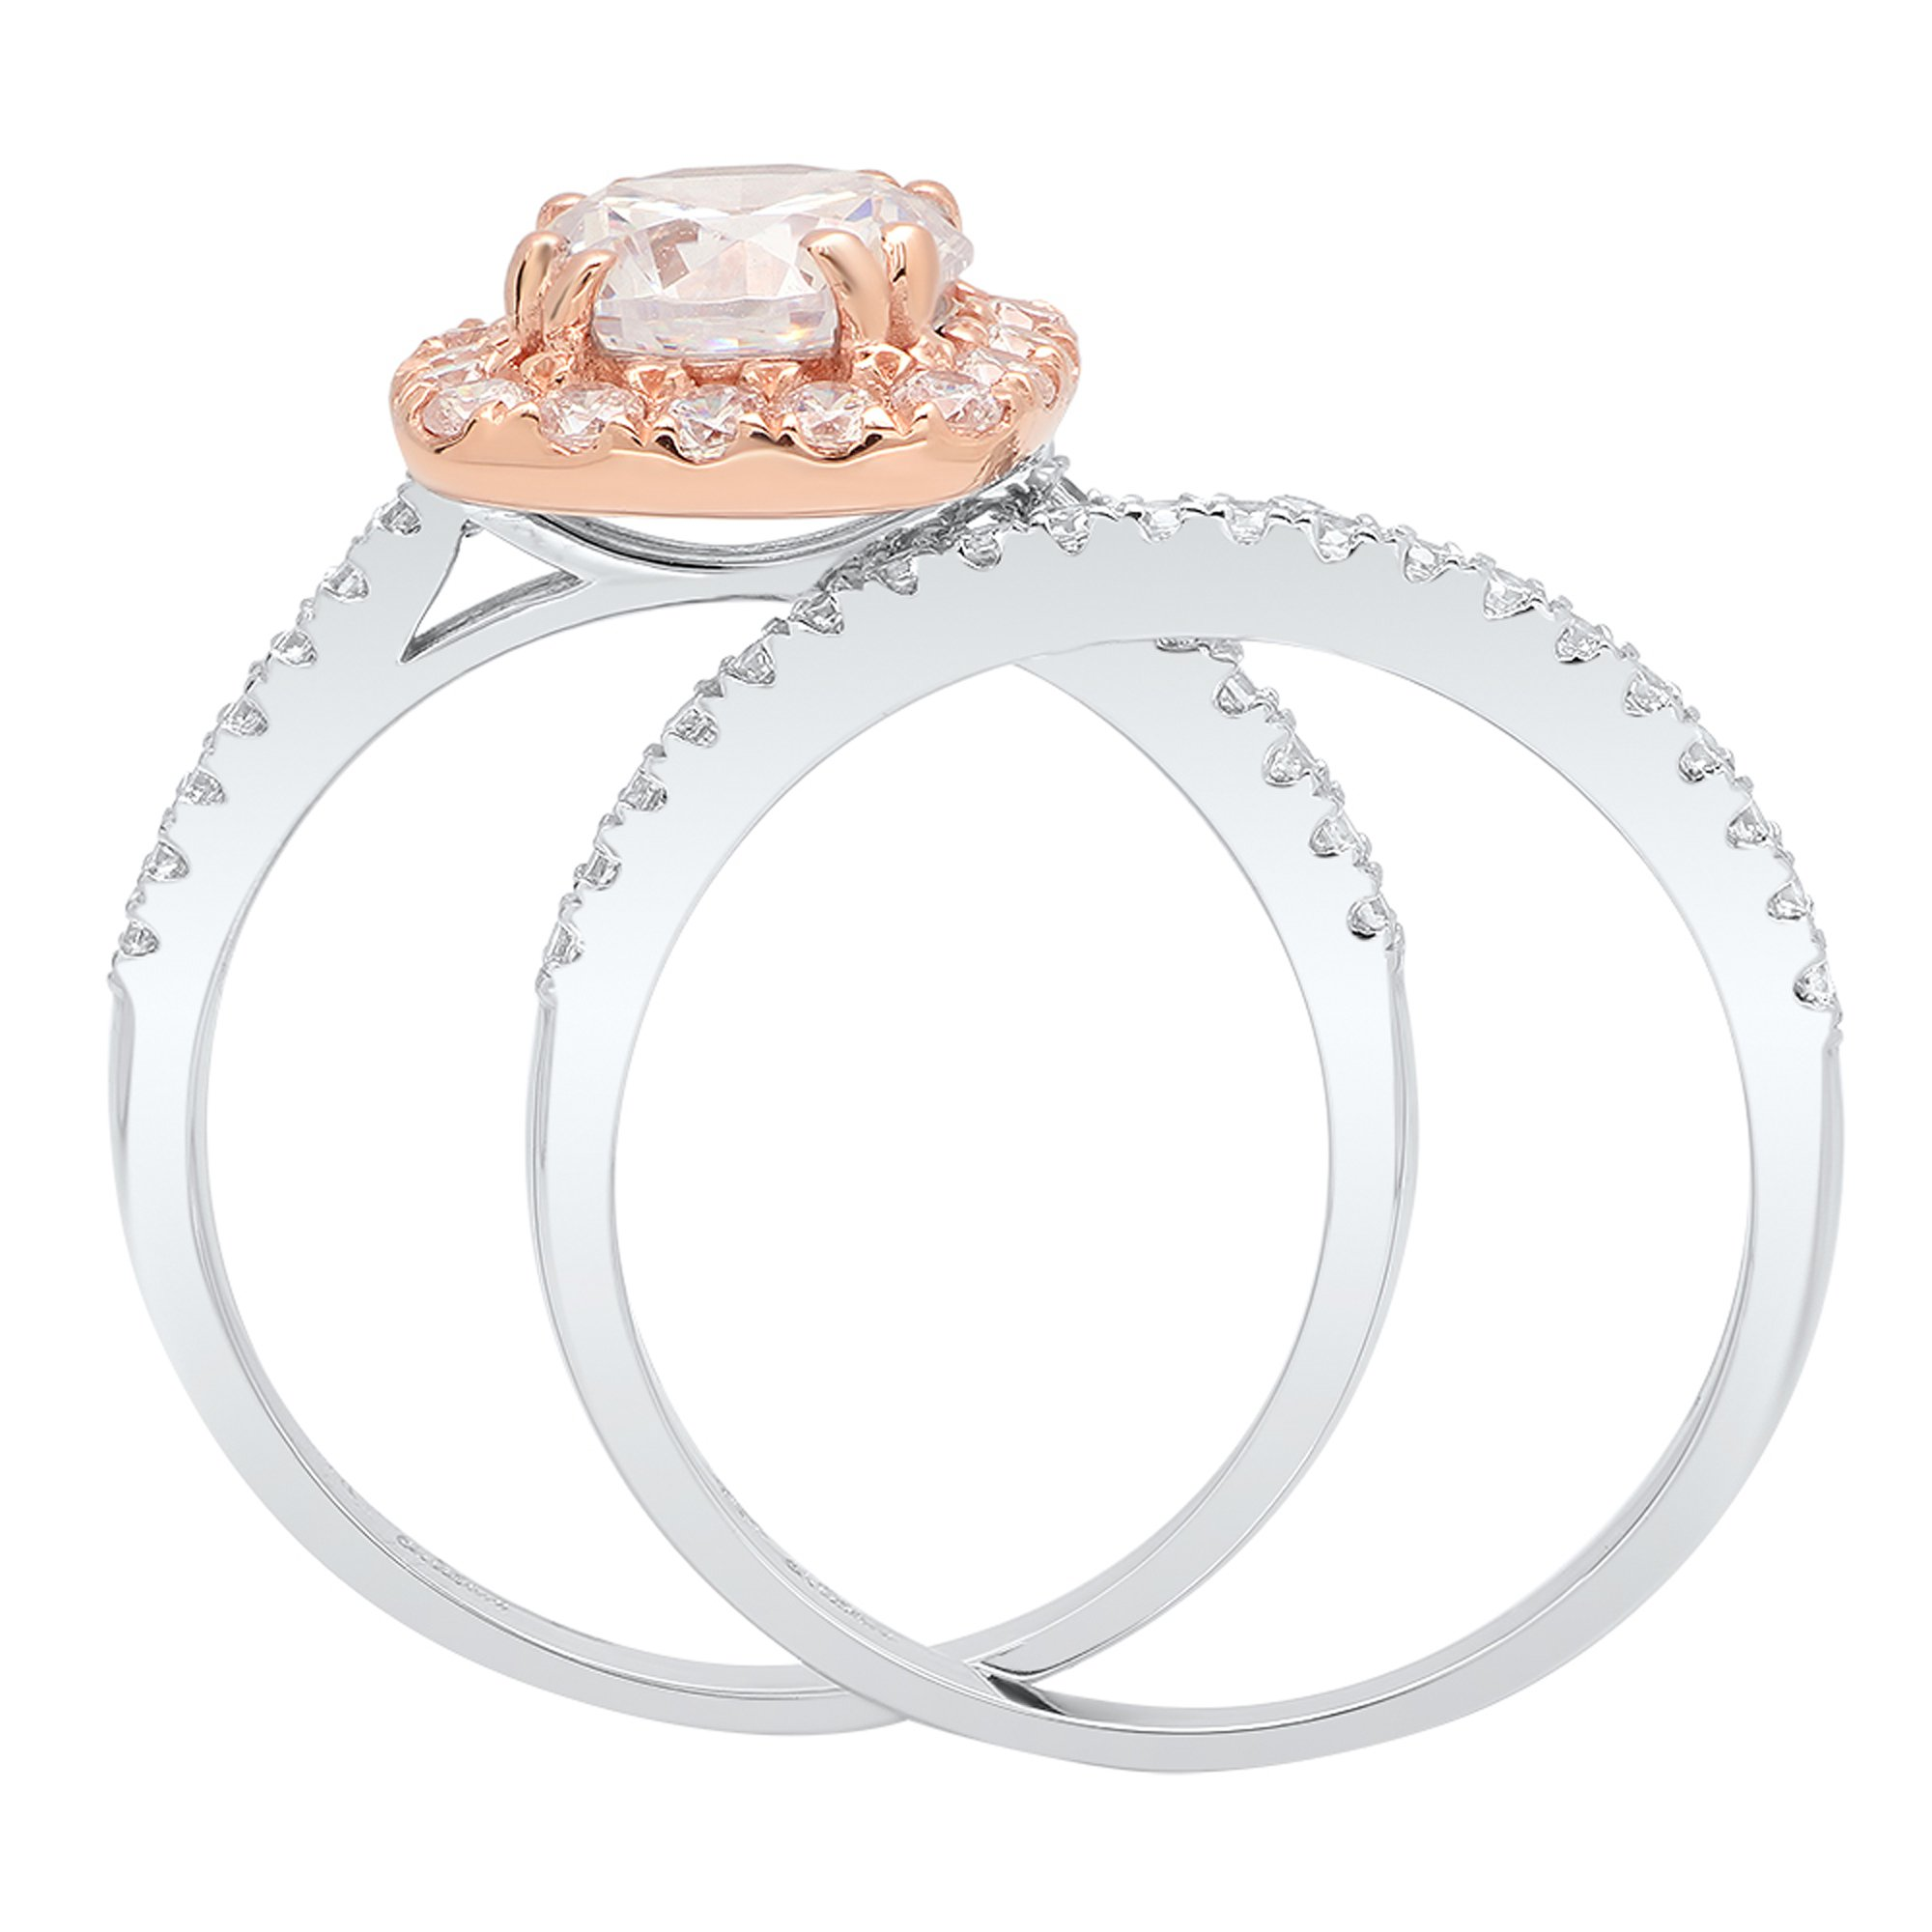 2.35 CT Round Brilliant Cut Simulated Diamond CZ Designer Solitaire Pave Halo Ring band set Solid 14k White and Rose Multi Tone Gold by Clara Pucci (Image #2)